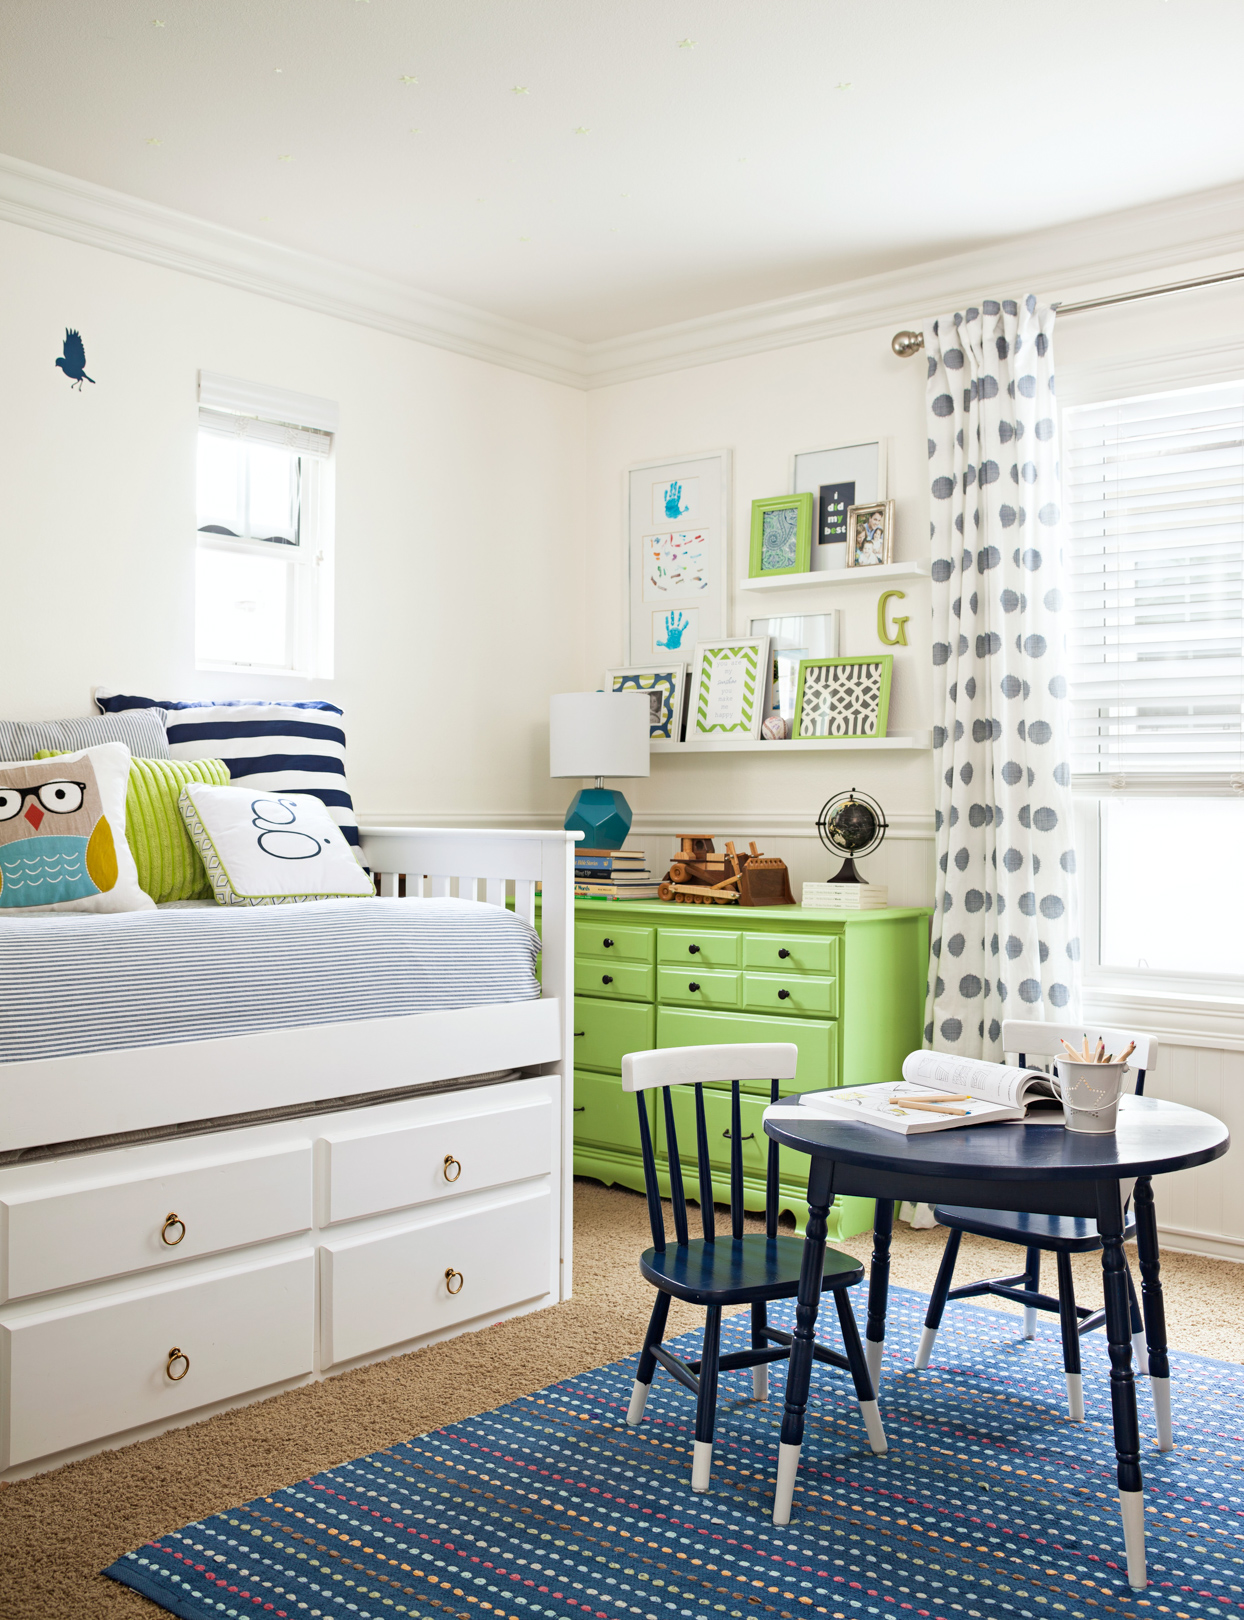 childrens bedroom with white green and blue décor